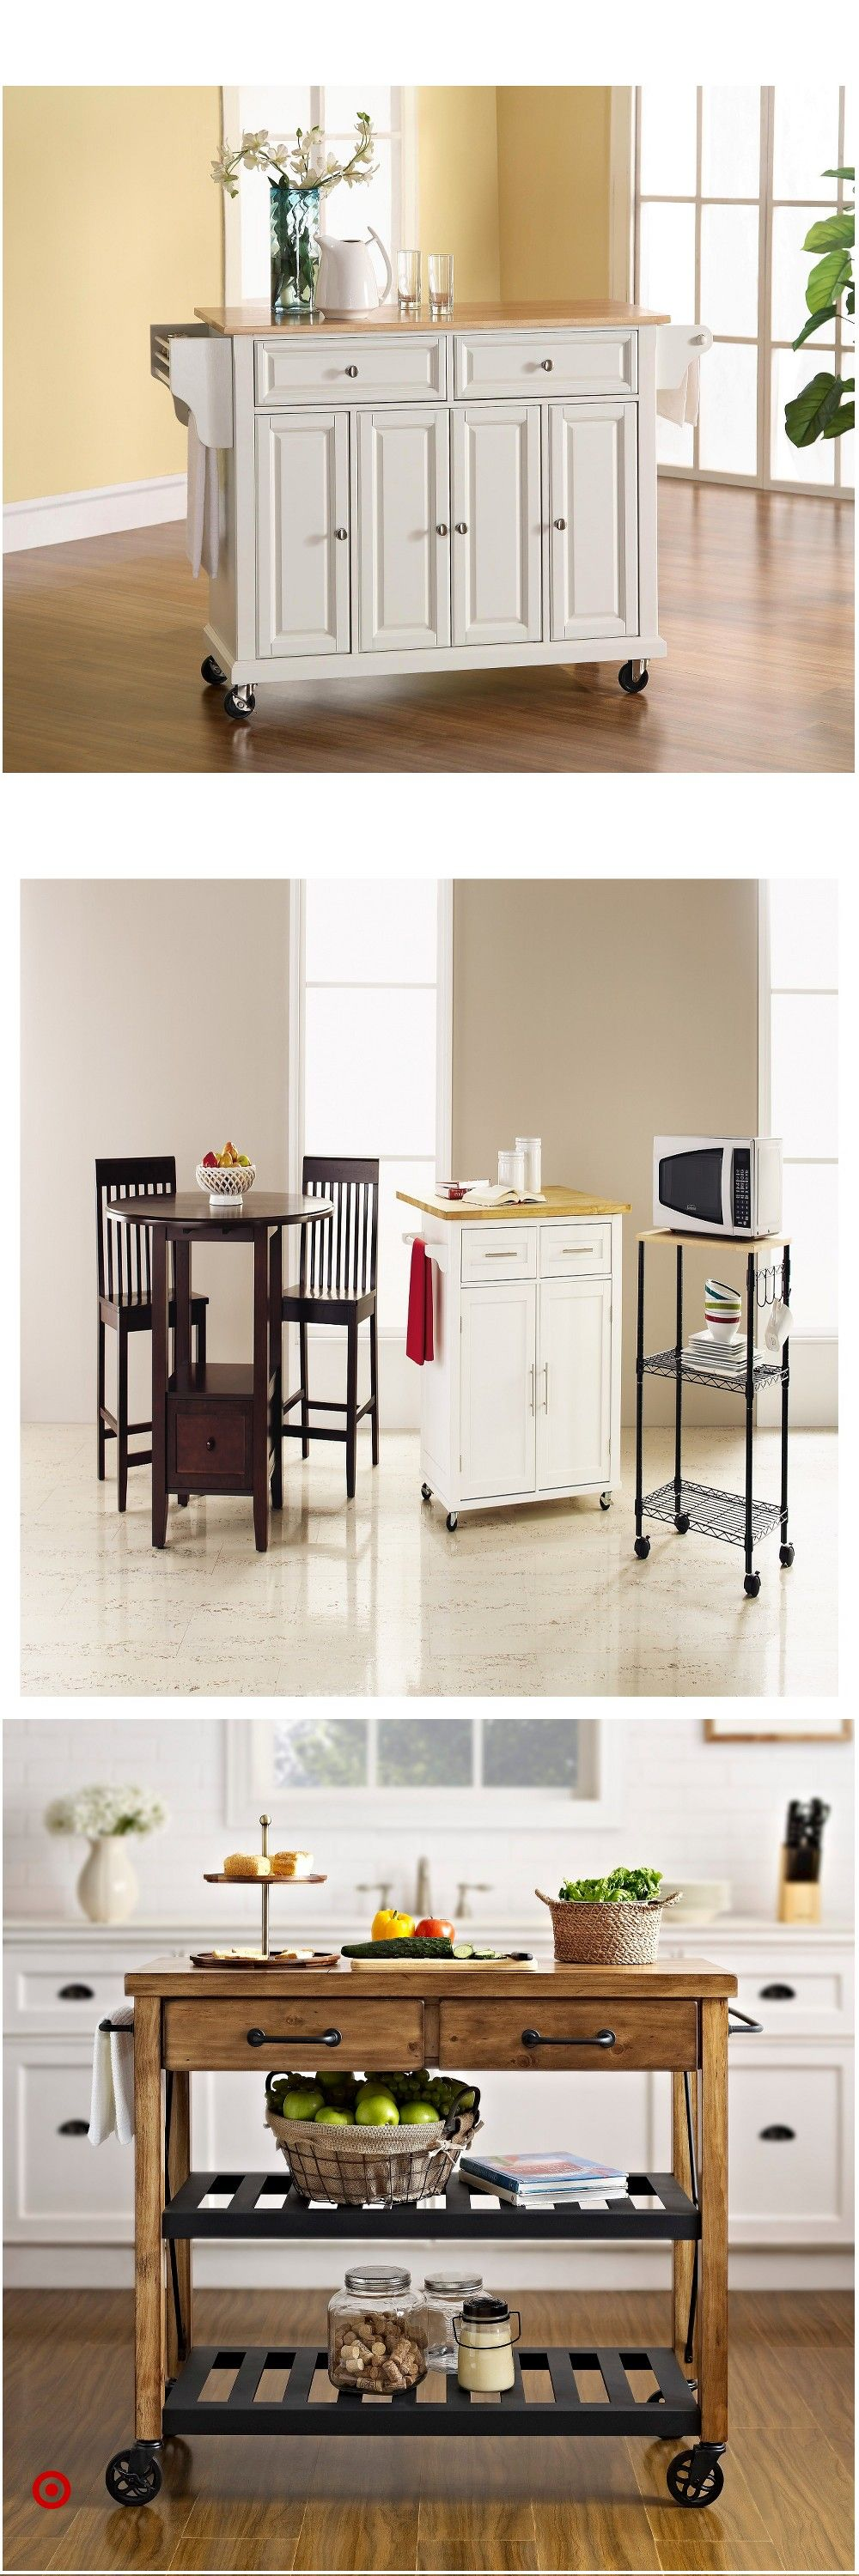 Shop Target for kitchen & island you will love at great ...